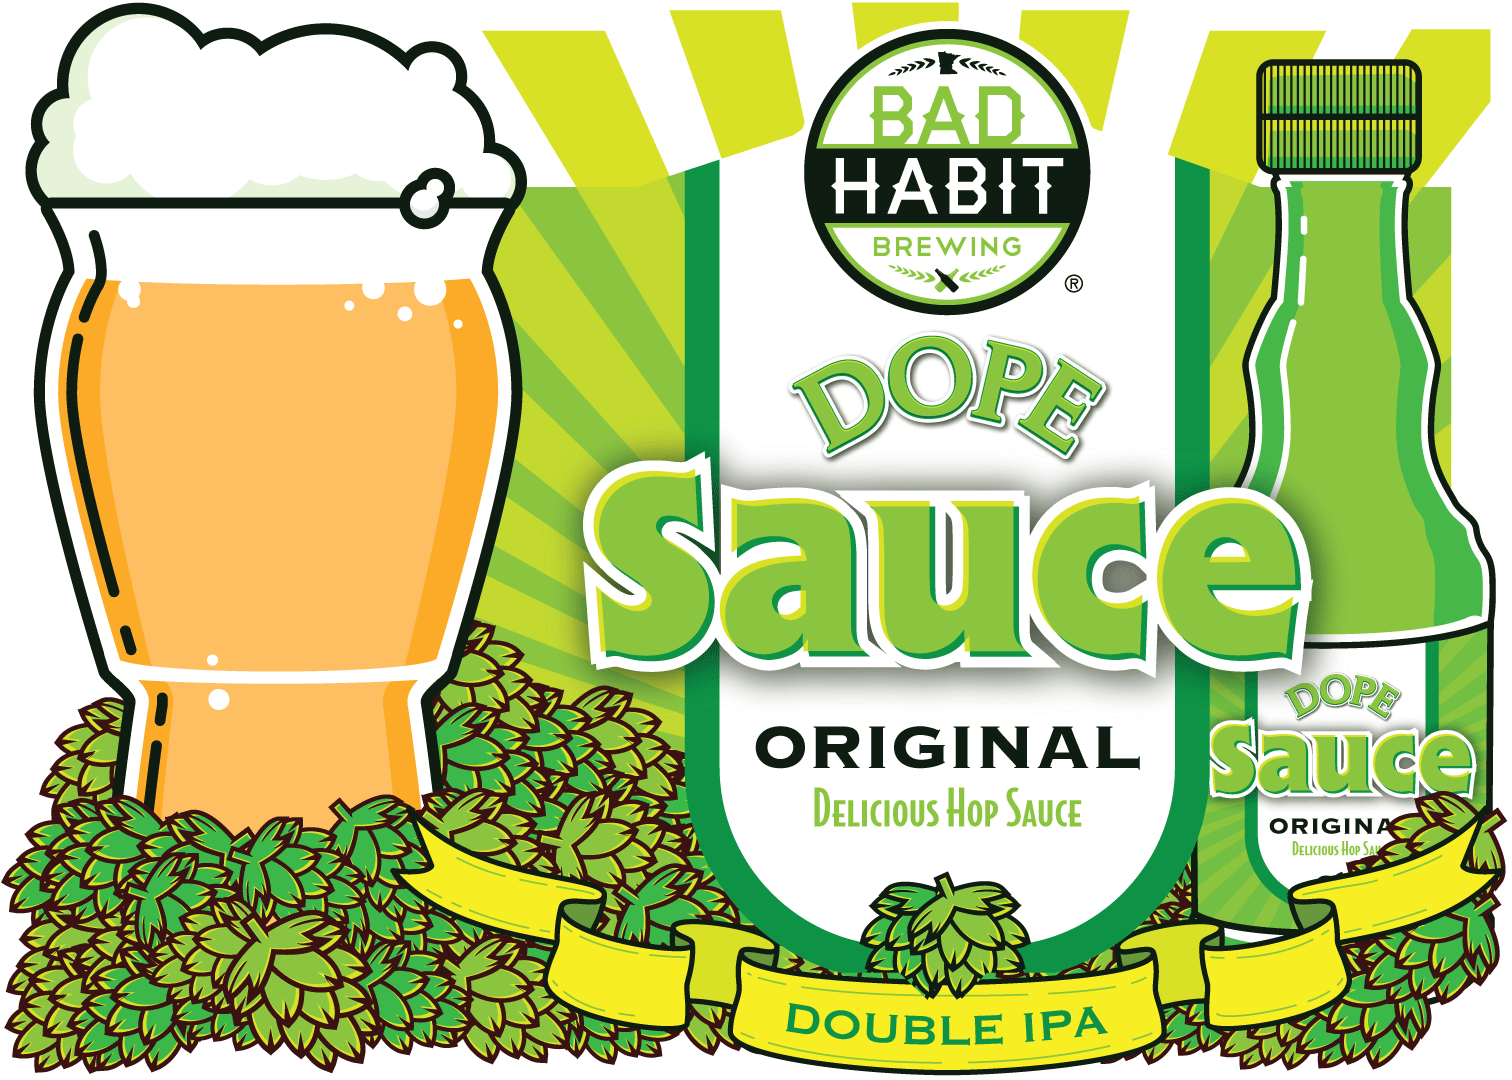 DOPE SAUCE - Double IPA | 8% ABVA perfectly hoppy. low bitter, double IPA that makes you walk with a certain confidence and slide through your daily routines with ease. Dry hopped with German hops for a white wine grape flavor profile, it's the sauce you'll want to put on everything. Having a bad day? Pour some dope sauce on it! Having a great time? Add some Dope Sauce to it! Not happy with your relationship? Spice it up with some Dope Sauce! The one and only Hop Sauce recommended by 10 out of 10 Bad Habit employees.